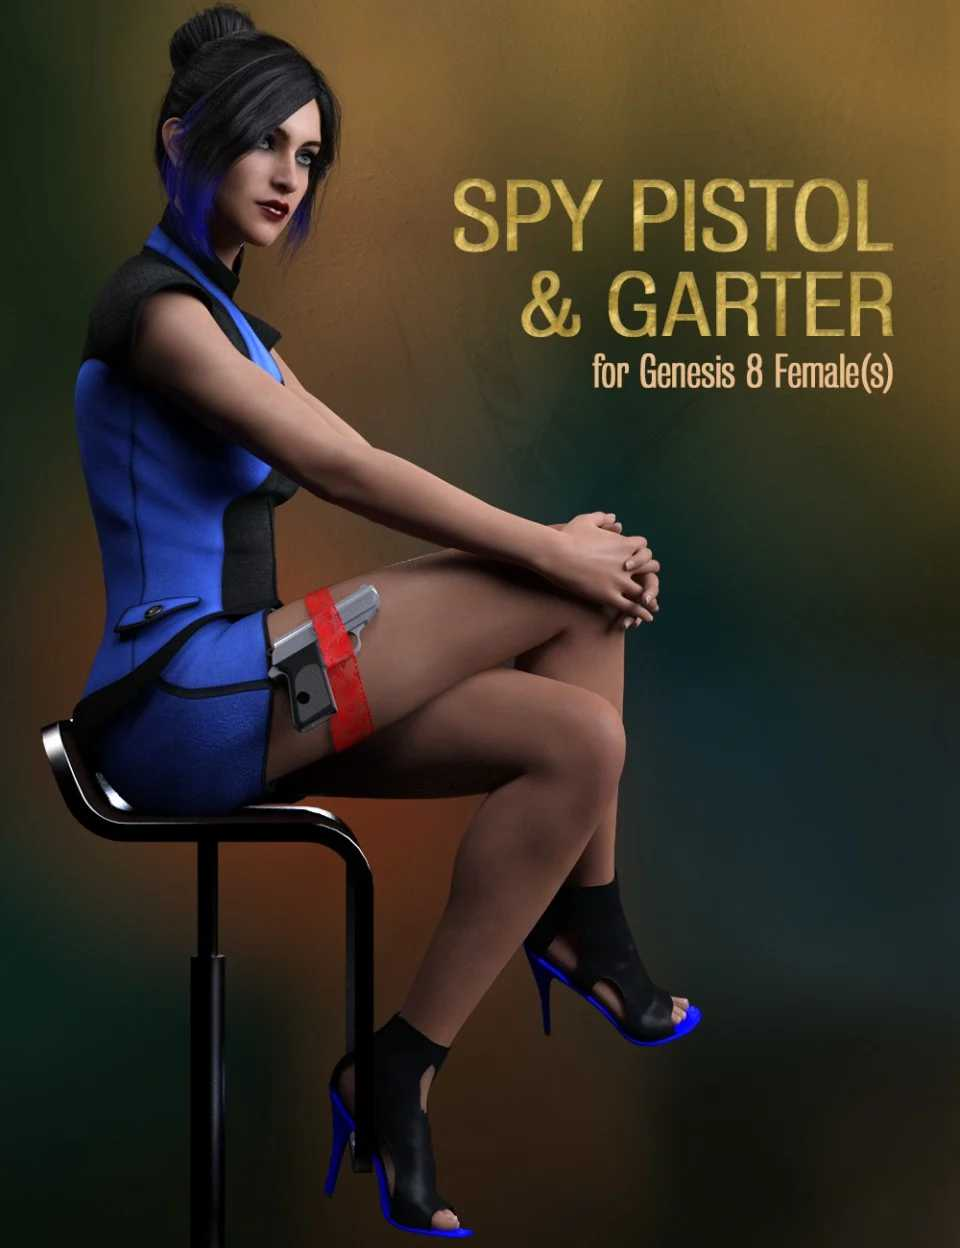 Spy Pistol and Garter for Genesis 8 Female